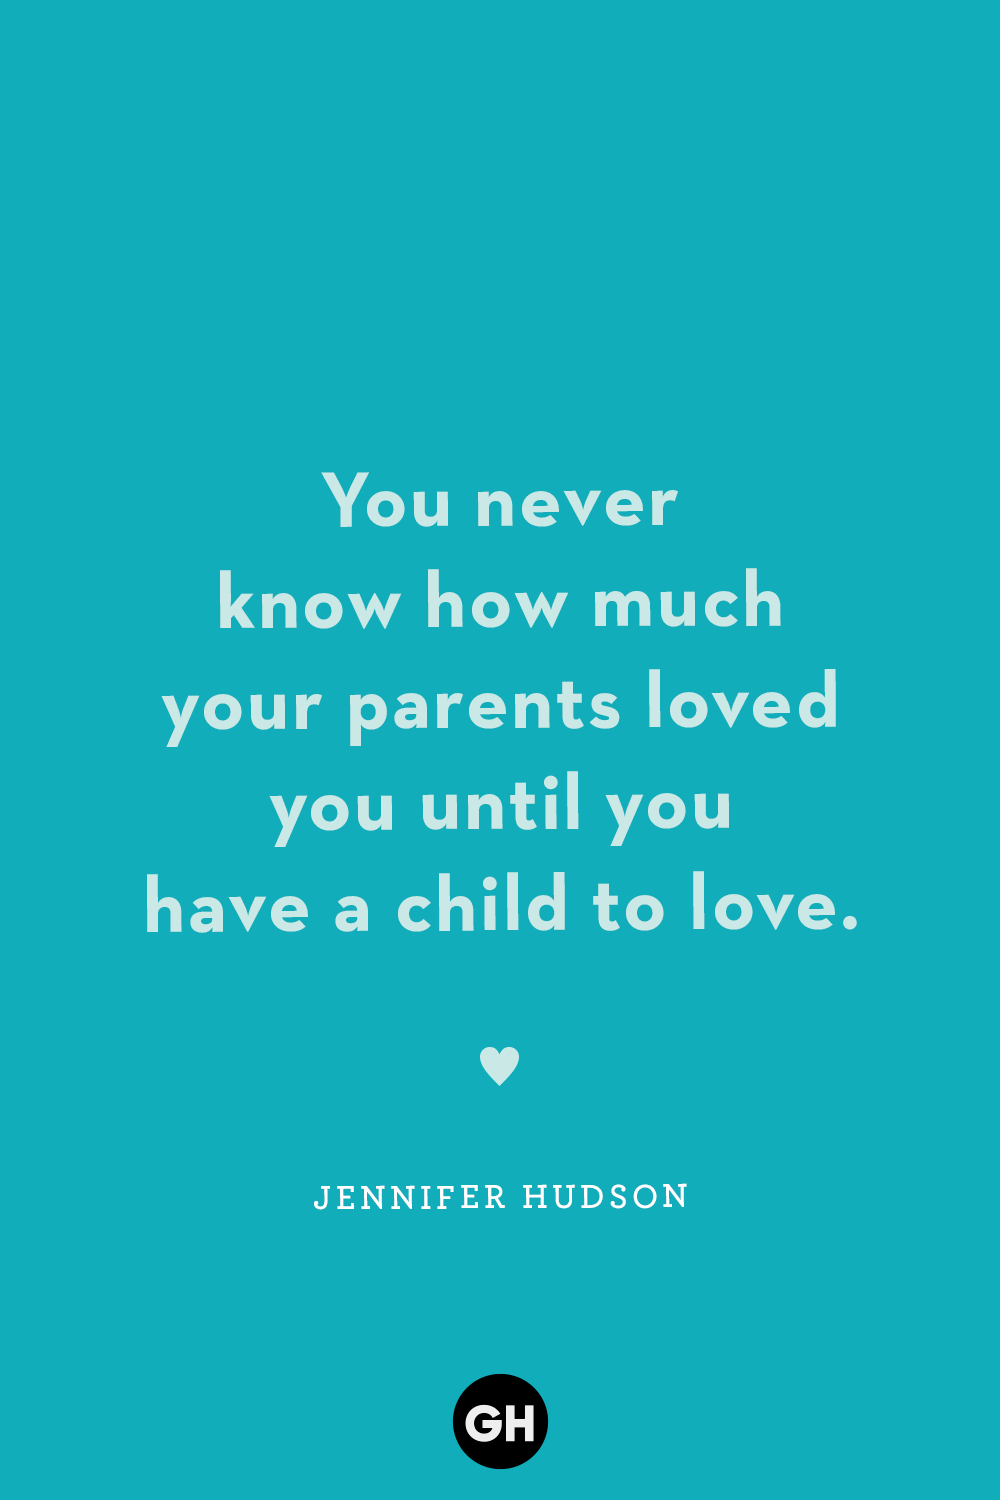 8 Best New-Mom Quotes - Wise Sayings for First-Time Parents